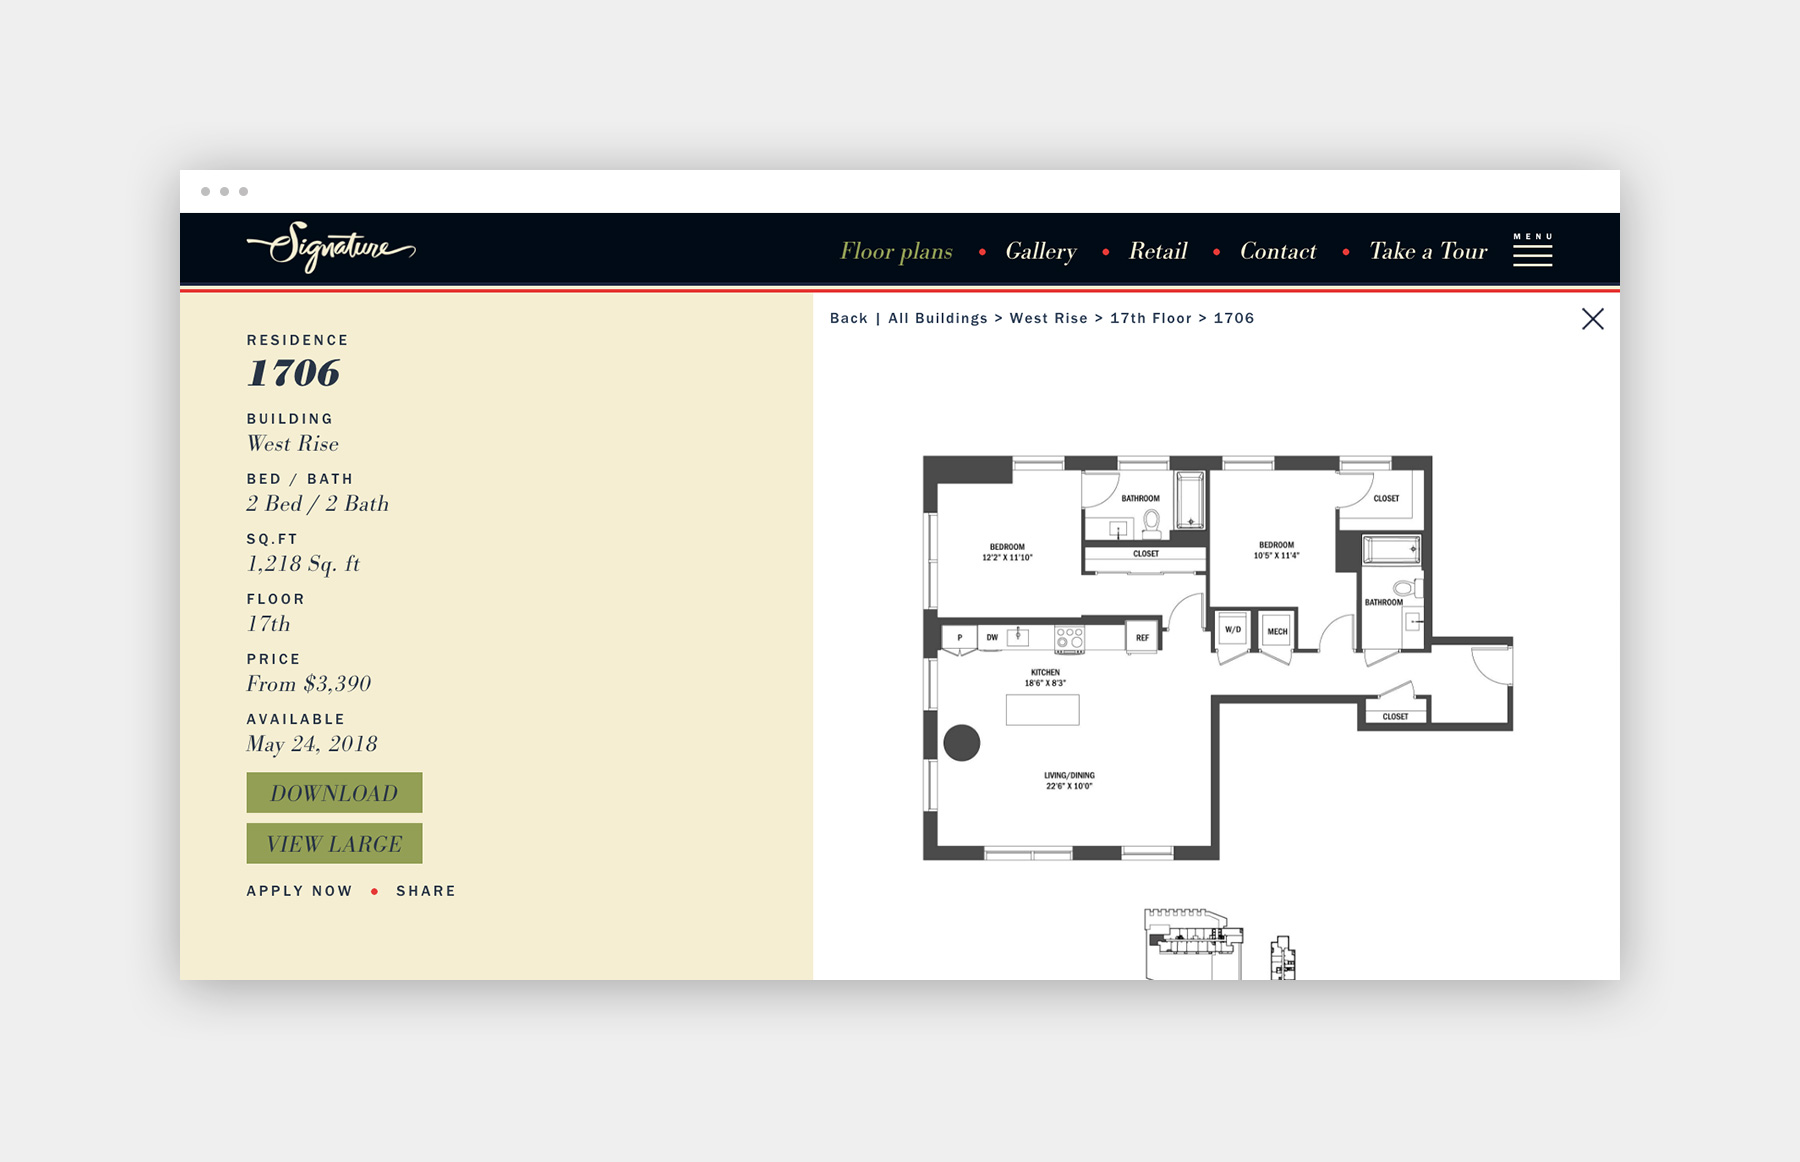 Signature_floorplans_5.jpg